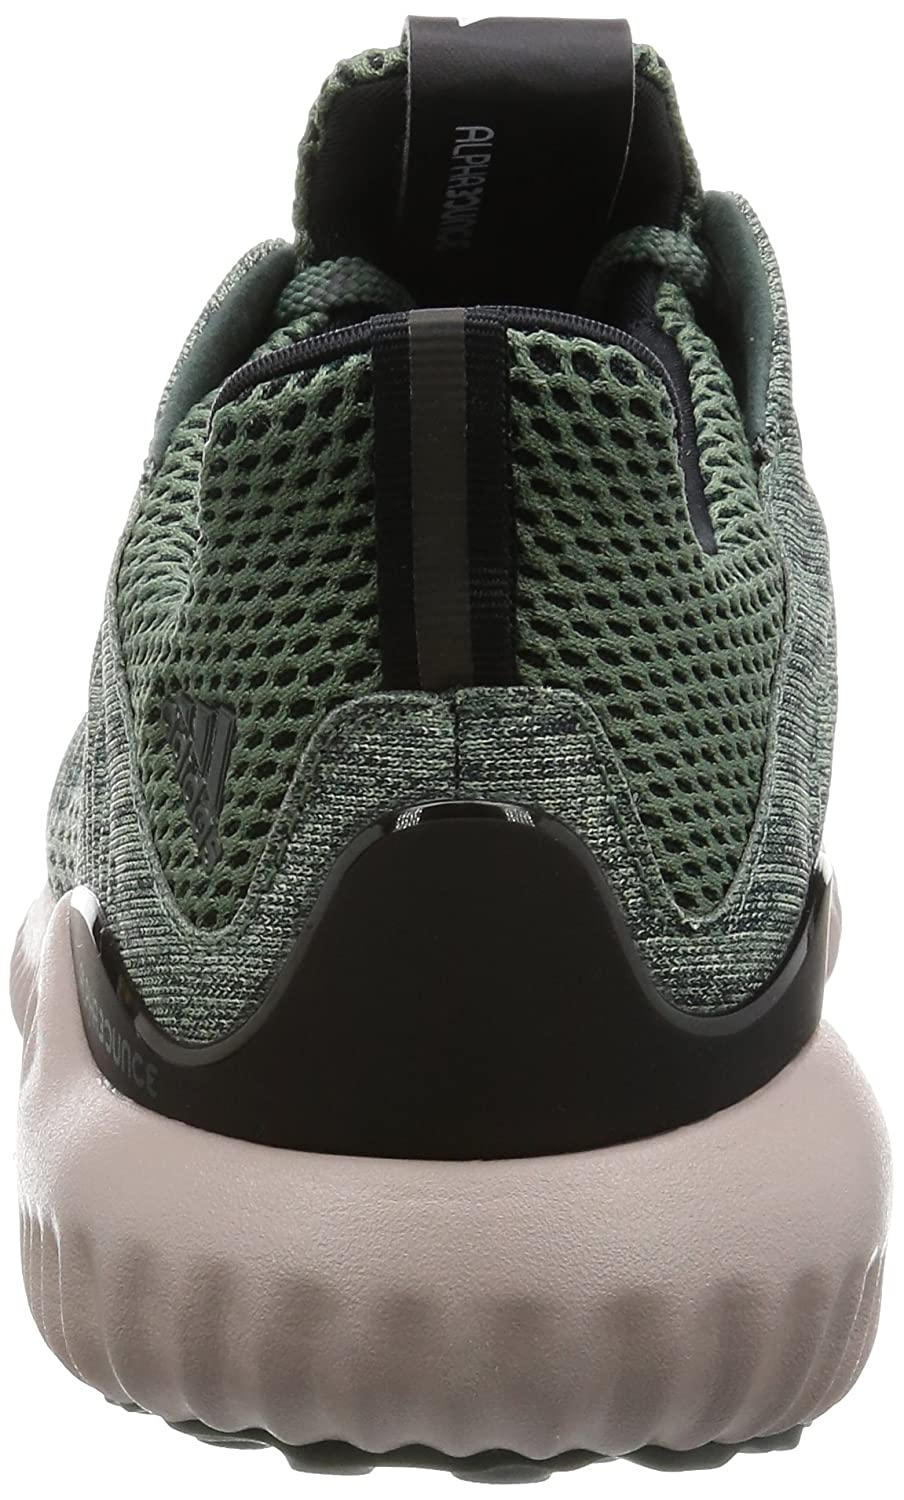 84b27f06a9c Adidas - Alphabounce EM M - BB9042 - Color  Beige-Black-Green - Size  11.5   Amazon.co.uk  Shoes   Bags